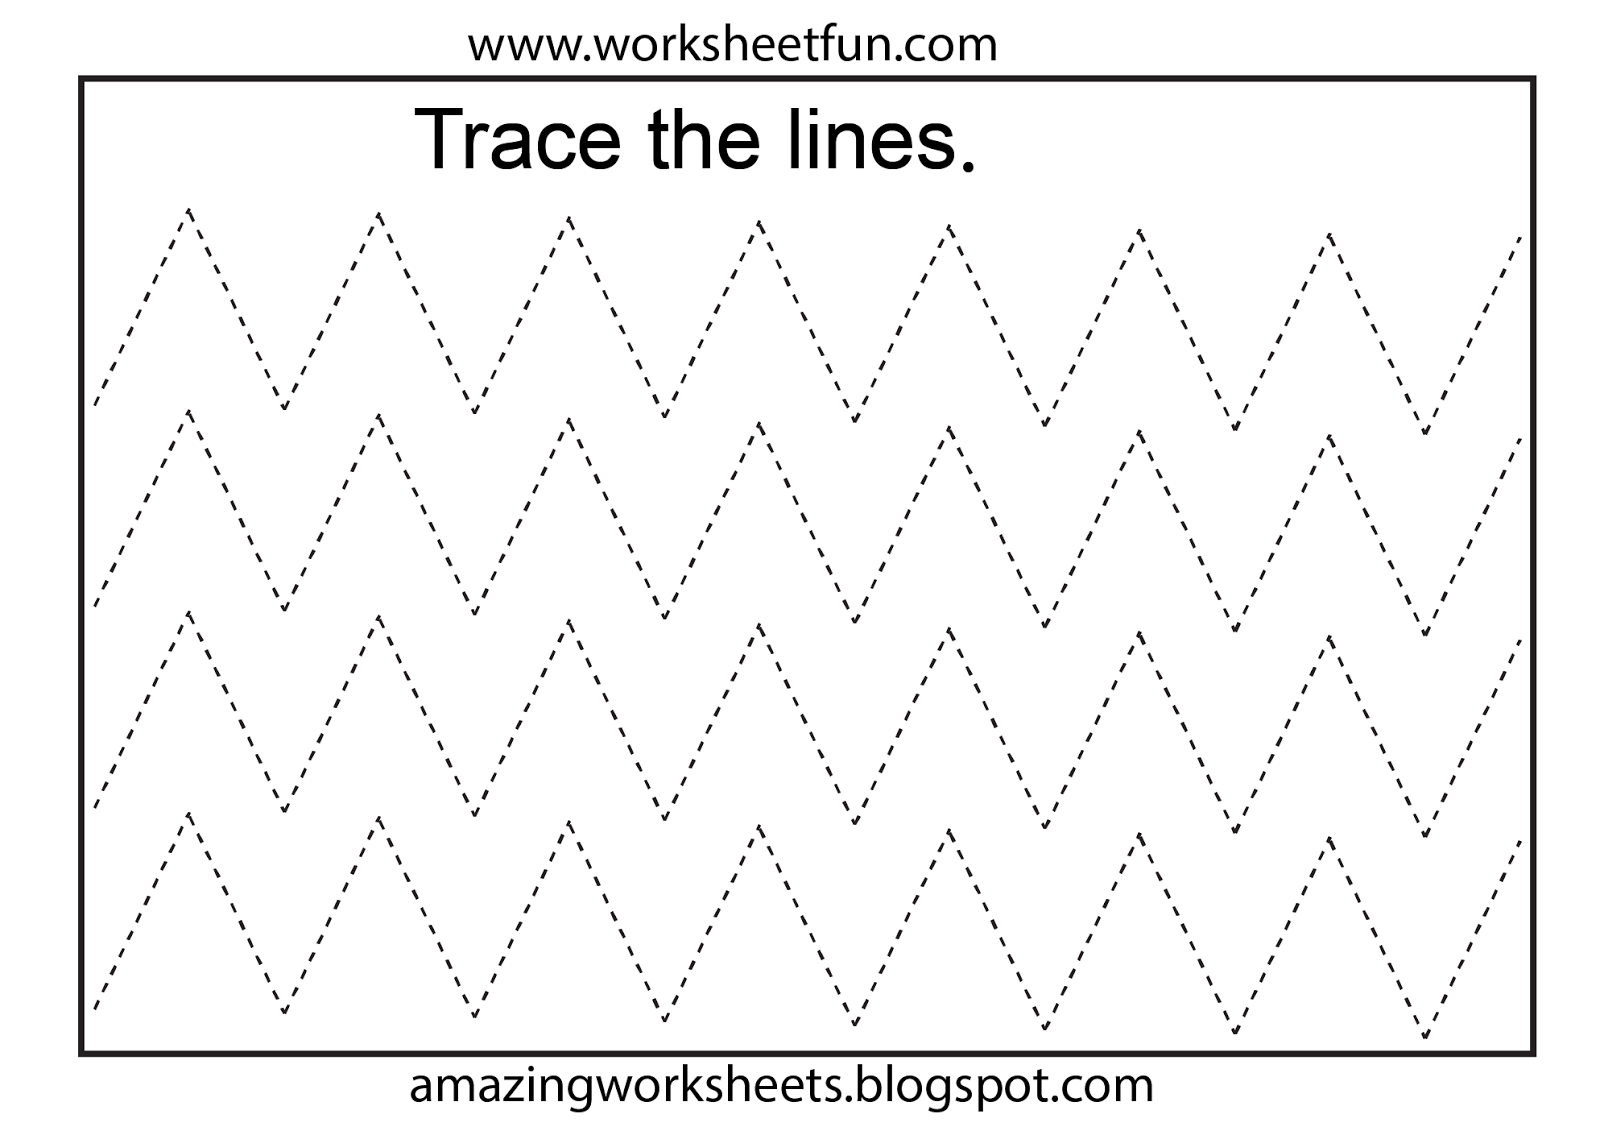 Printables Tracing Printable Worksheets 1000 images about tracing lines on pinterest fine motor preschool worksheets and in south africa